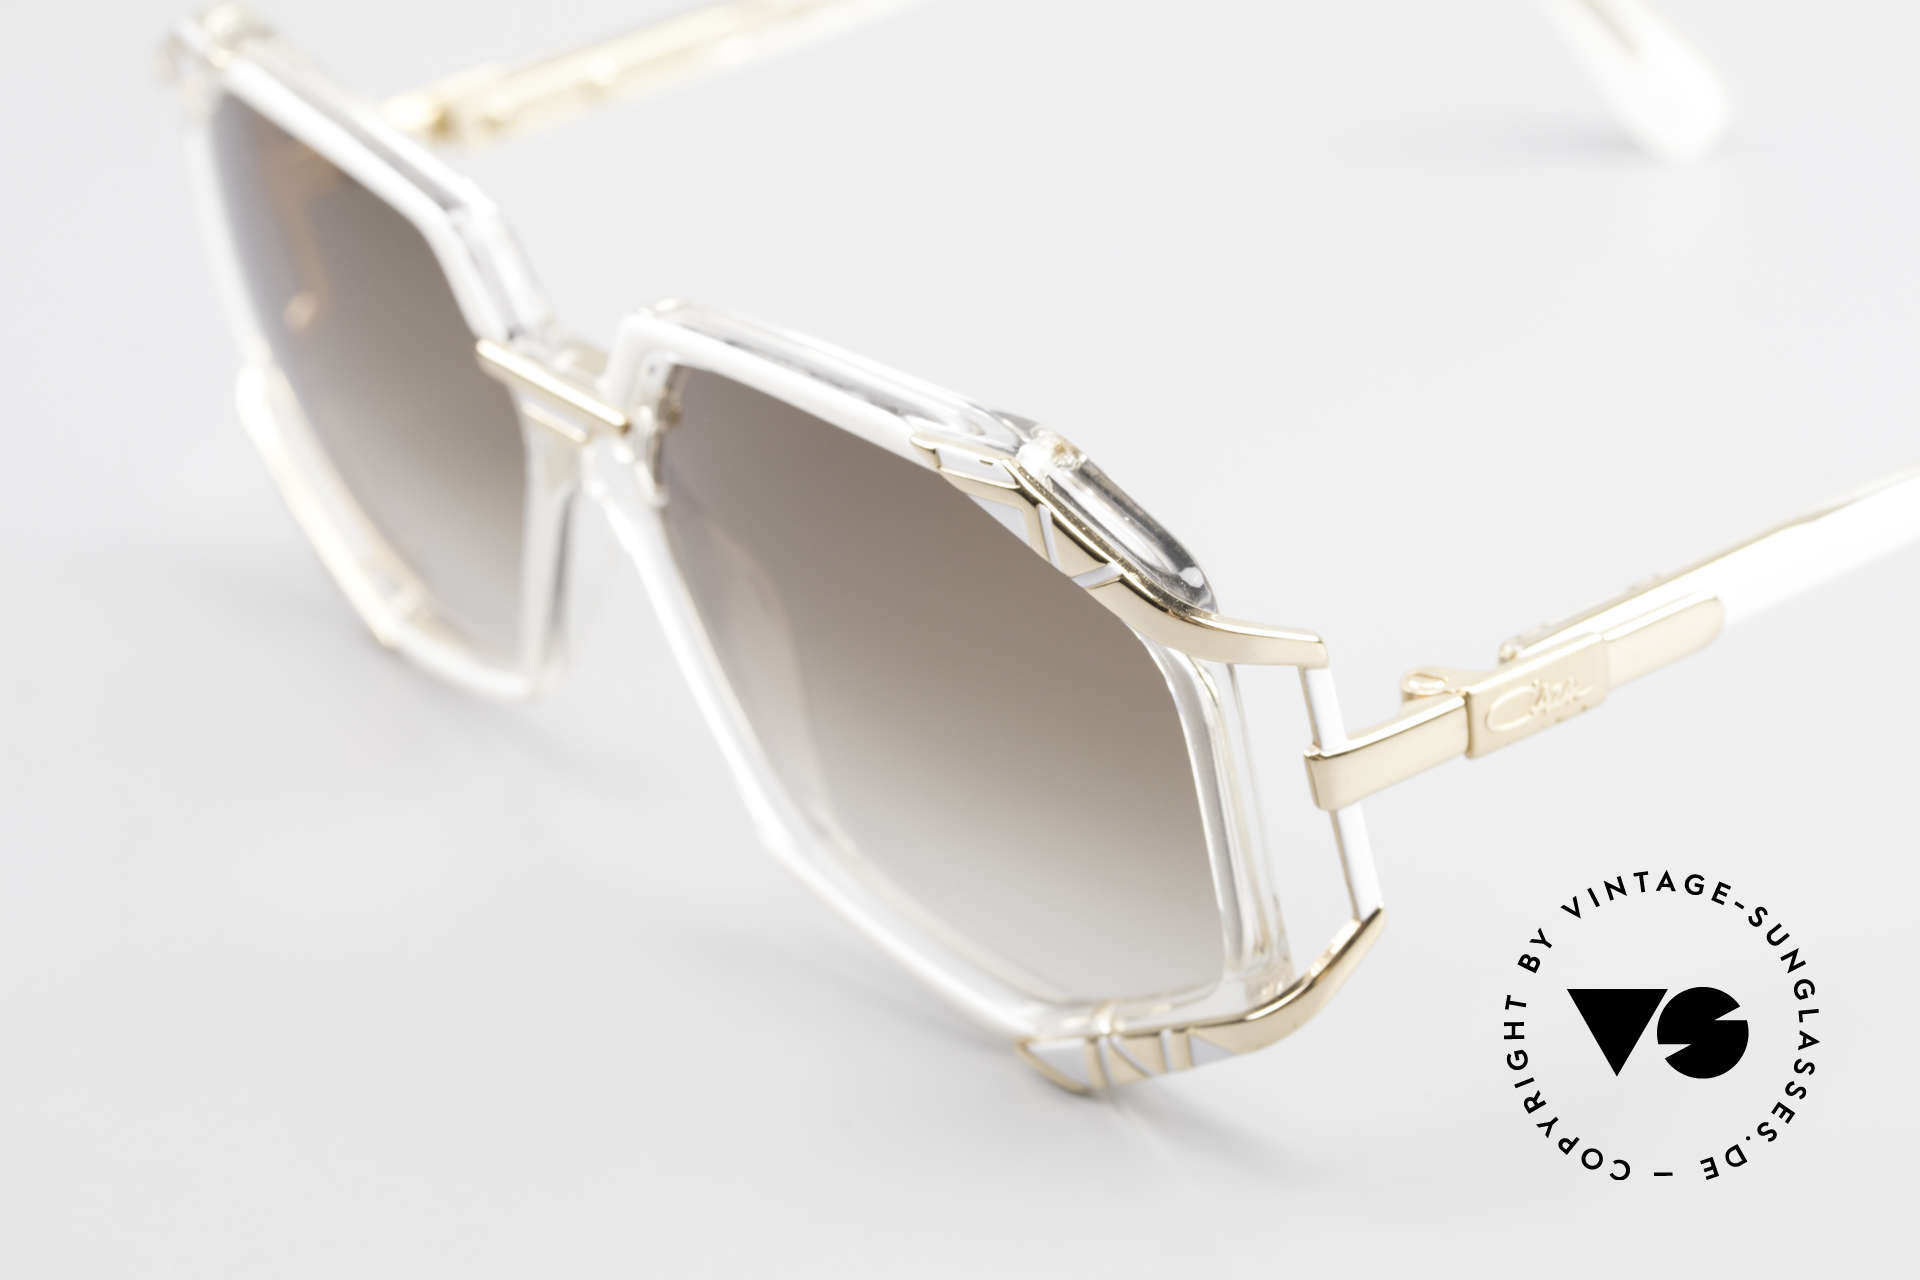 Cazal 355 Spectacular 90s Vintage Cazal, Cazal catalog color description: white / crystal / gold, Made for Women